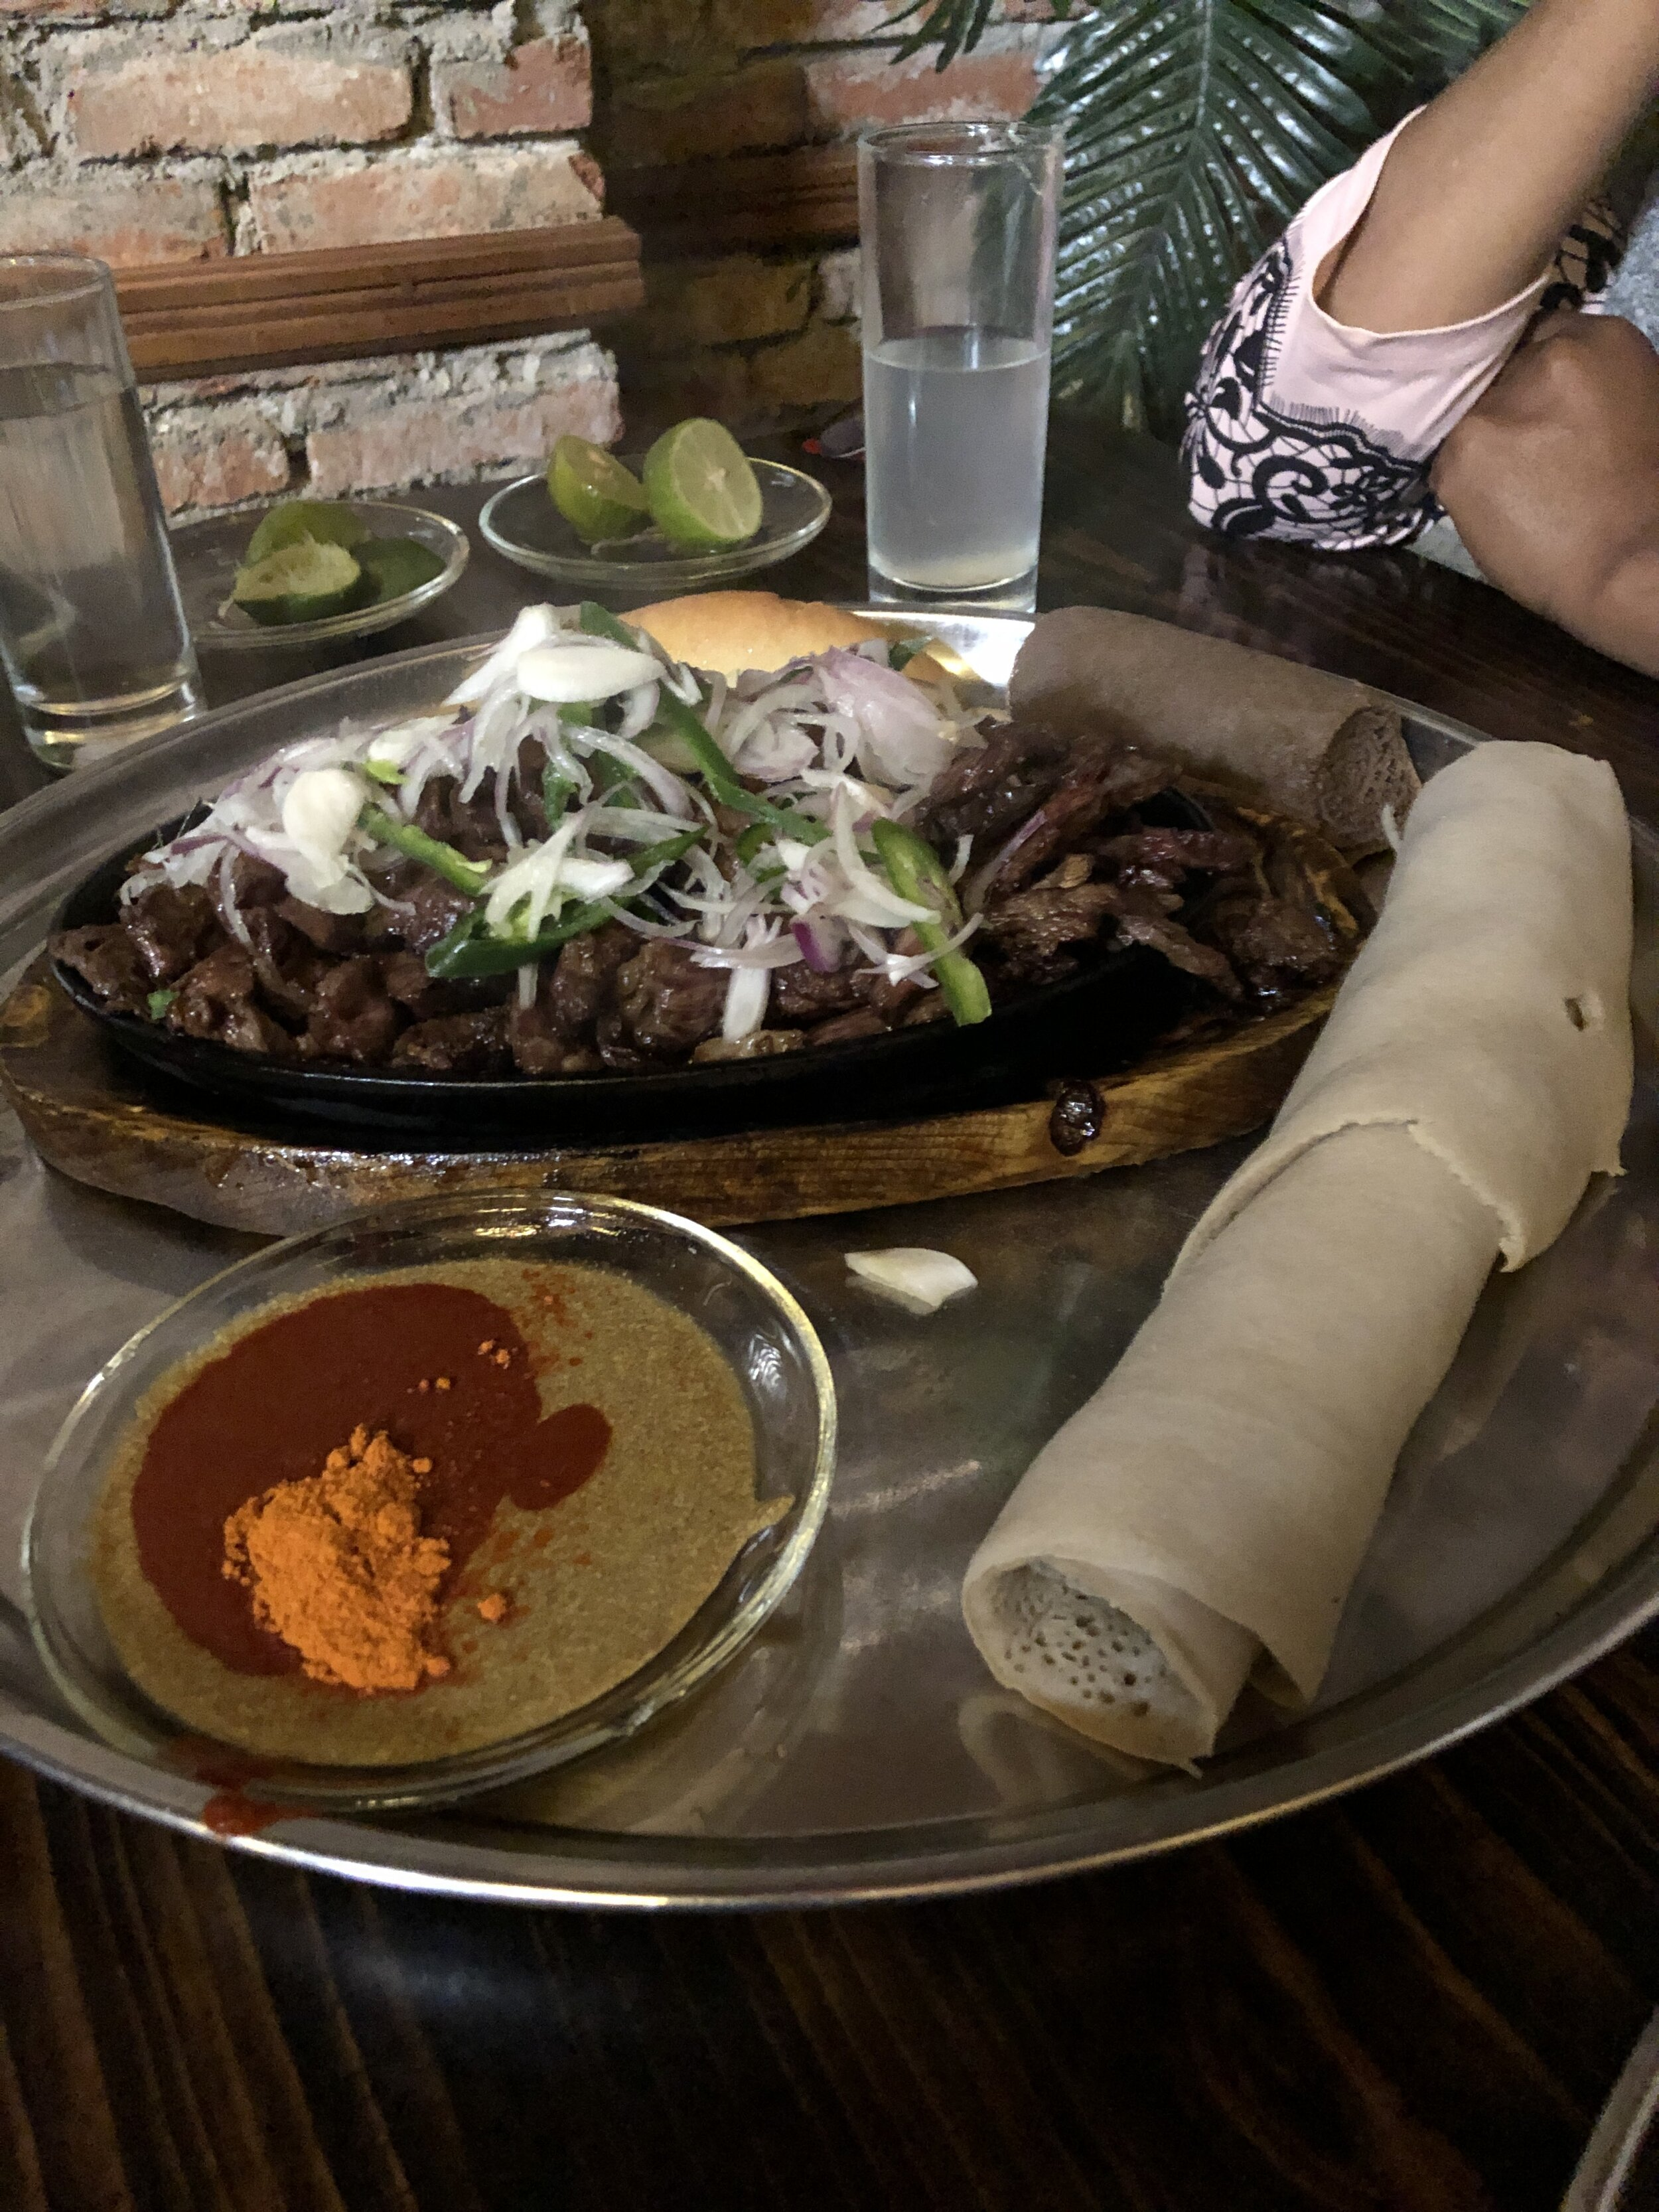 A fabulous Ethiopian meal: Tibs, Injera and Mitmita - eaten with the hands